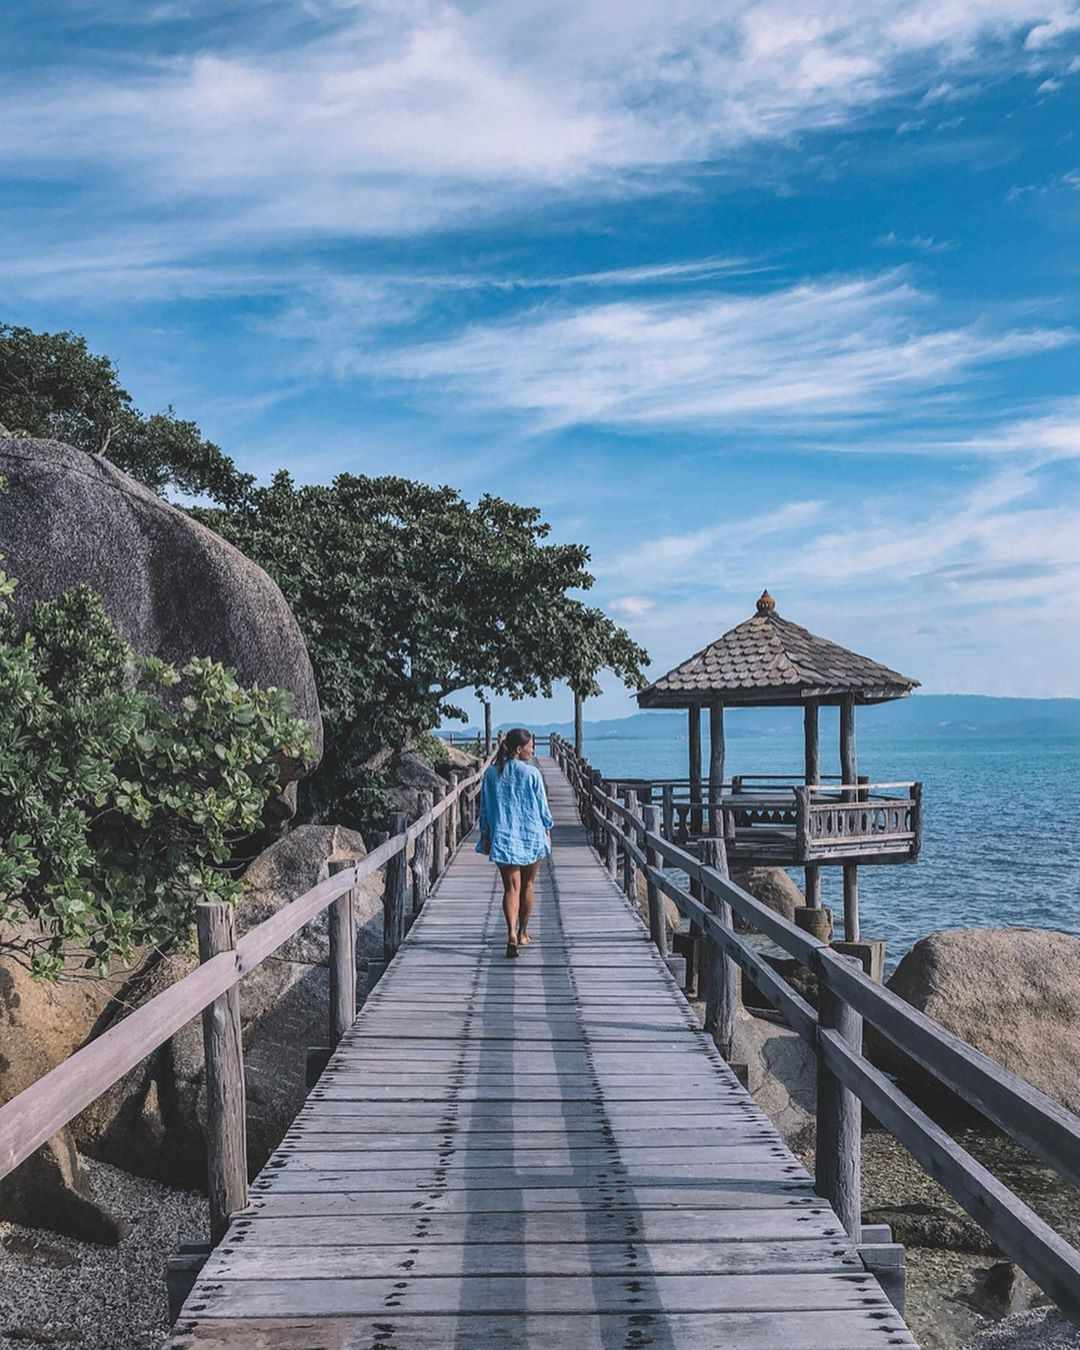 Loopbrug aan Leela Beach, Koh Phangan in Thailand